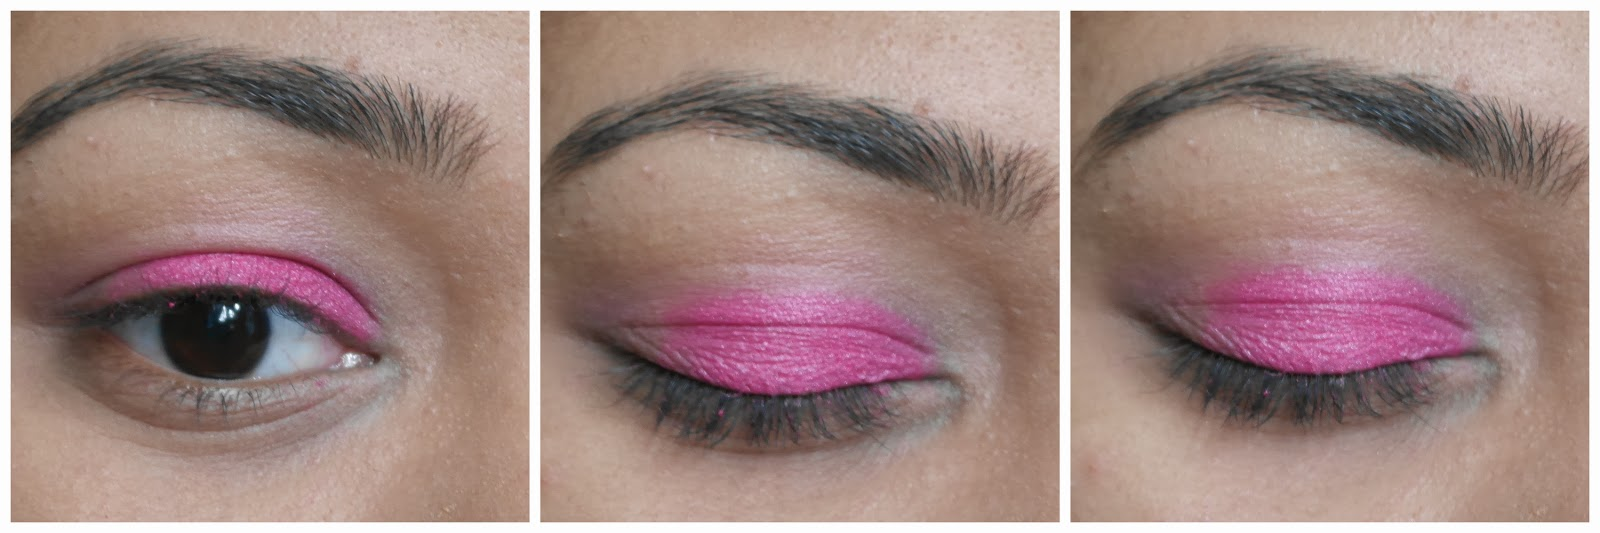 Pink Purple Eyeshadow- tutorial- eyemakeup